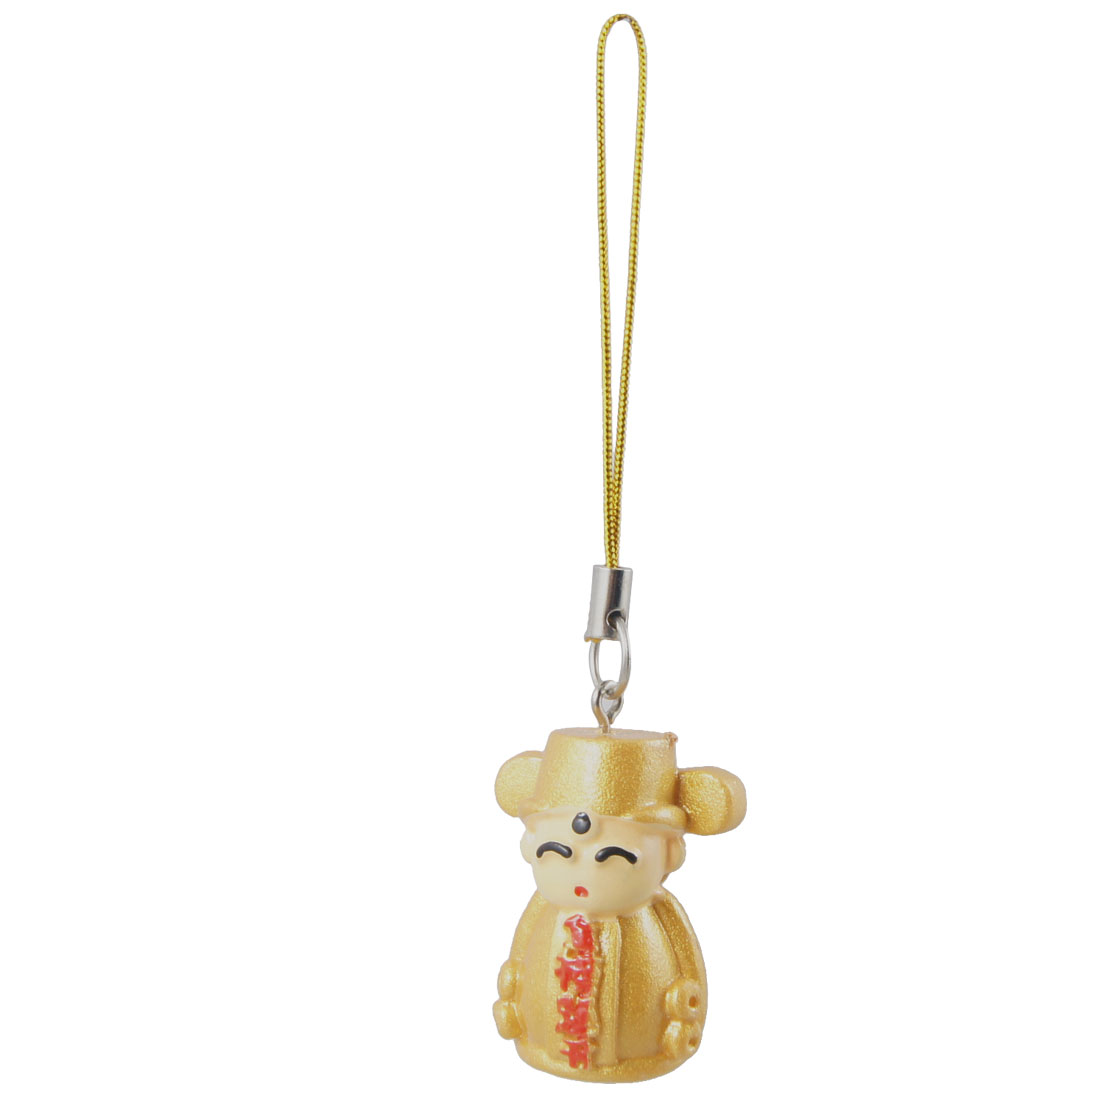 Gold Tone Plastic Doll Pendant Phone Hanging Charm Strap